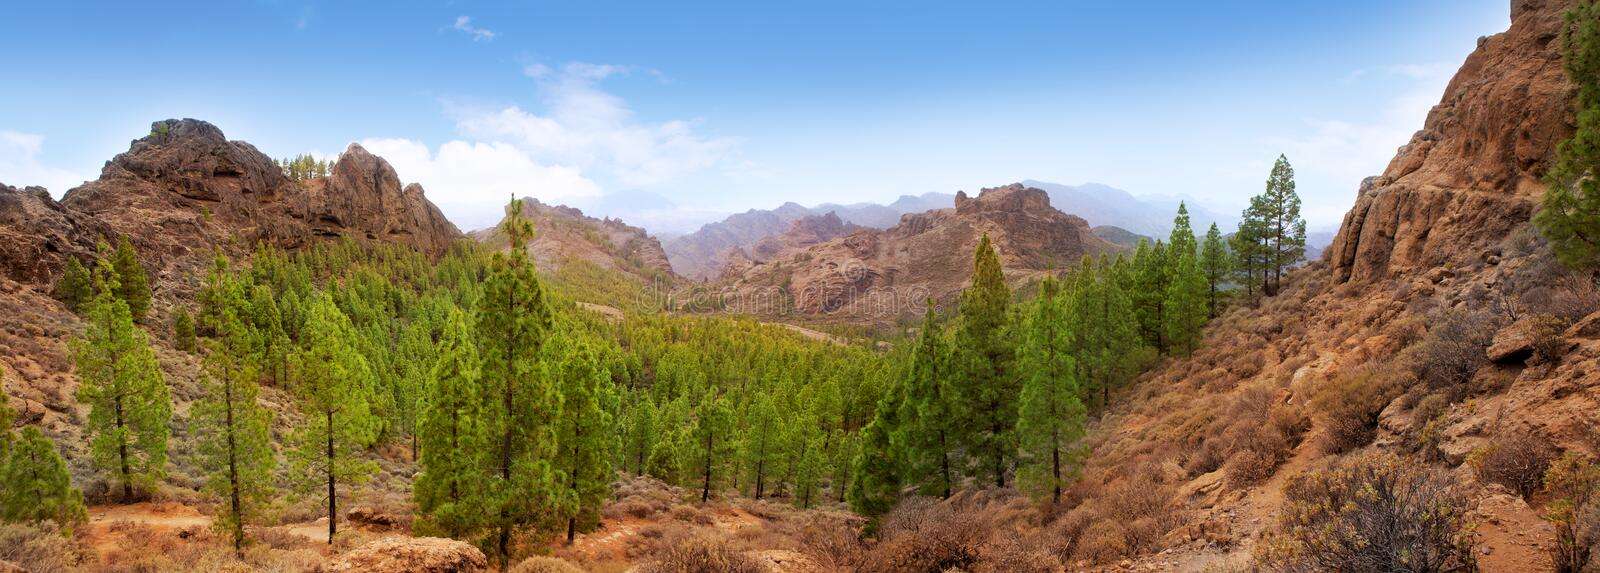 Gran Canaria Tejeda La Culata Mountains Stock Images